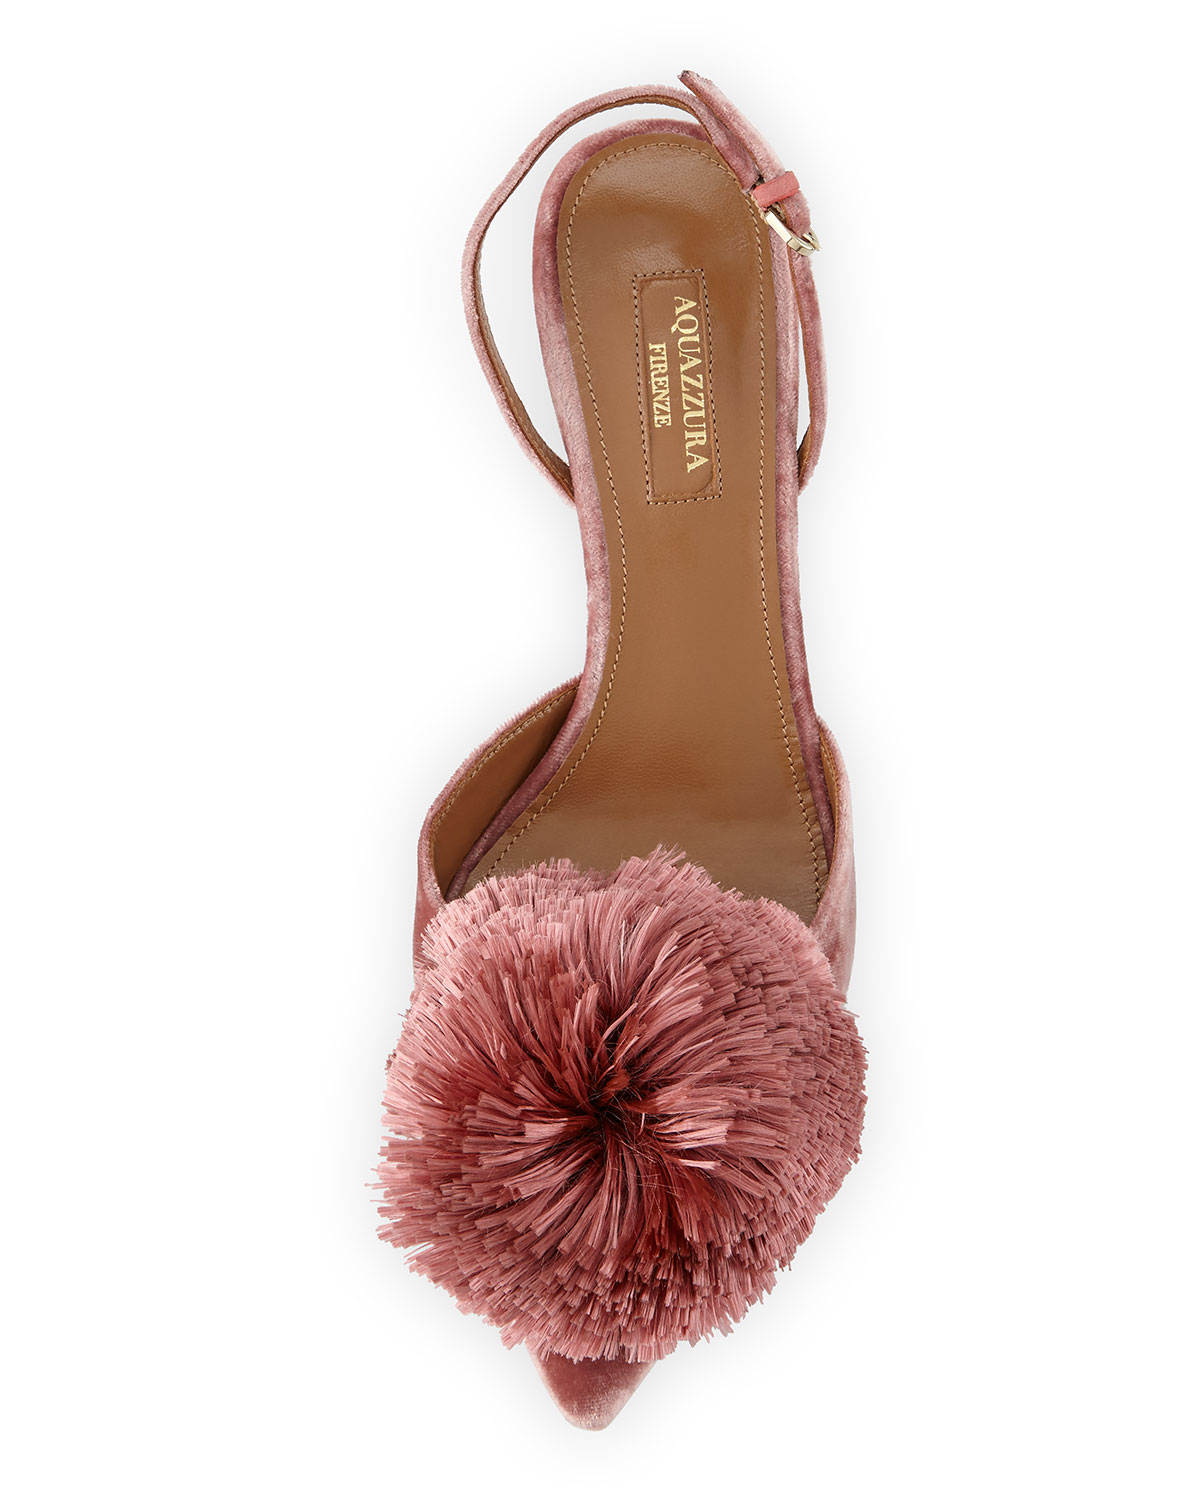 00fdf2a44e Aquazzura Powder Puff Pompom Pumps, Antique Rose | Neiman Marcus